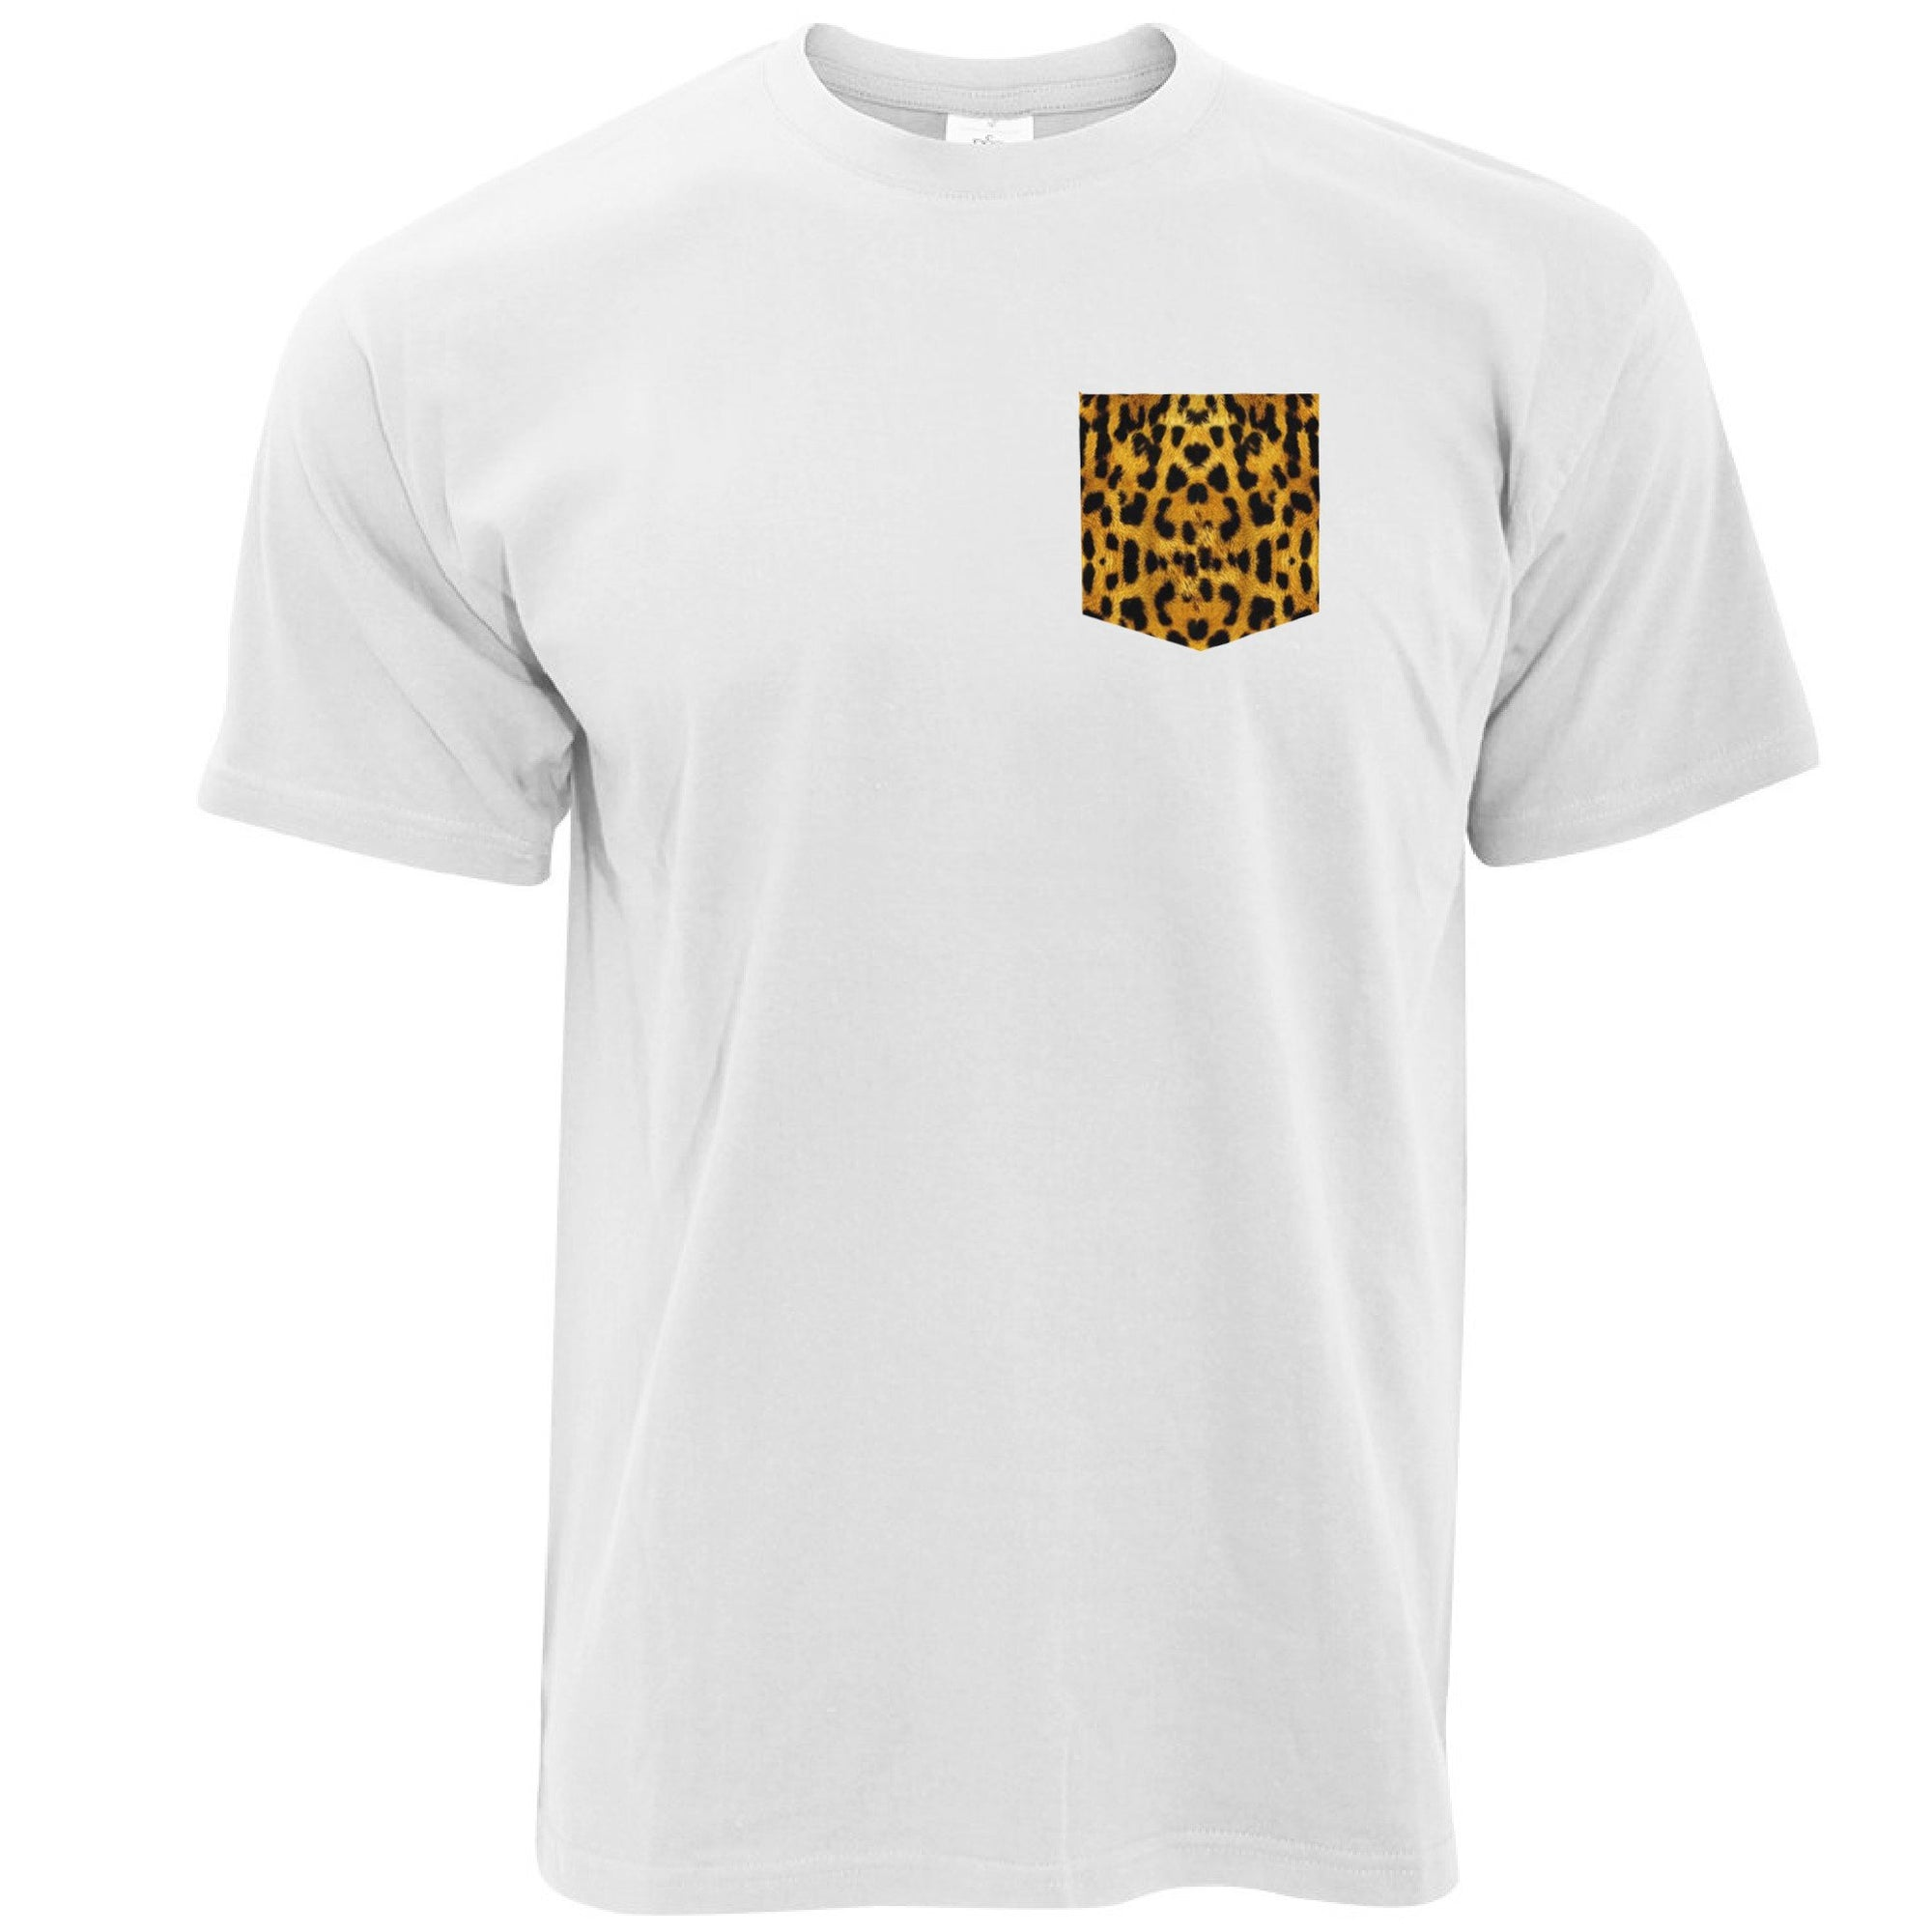 Hipster T Shirt Leopard Print Fake Pocket